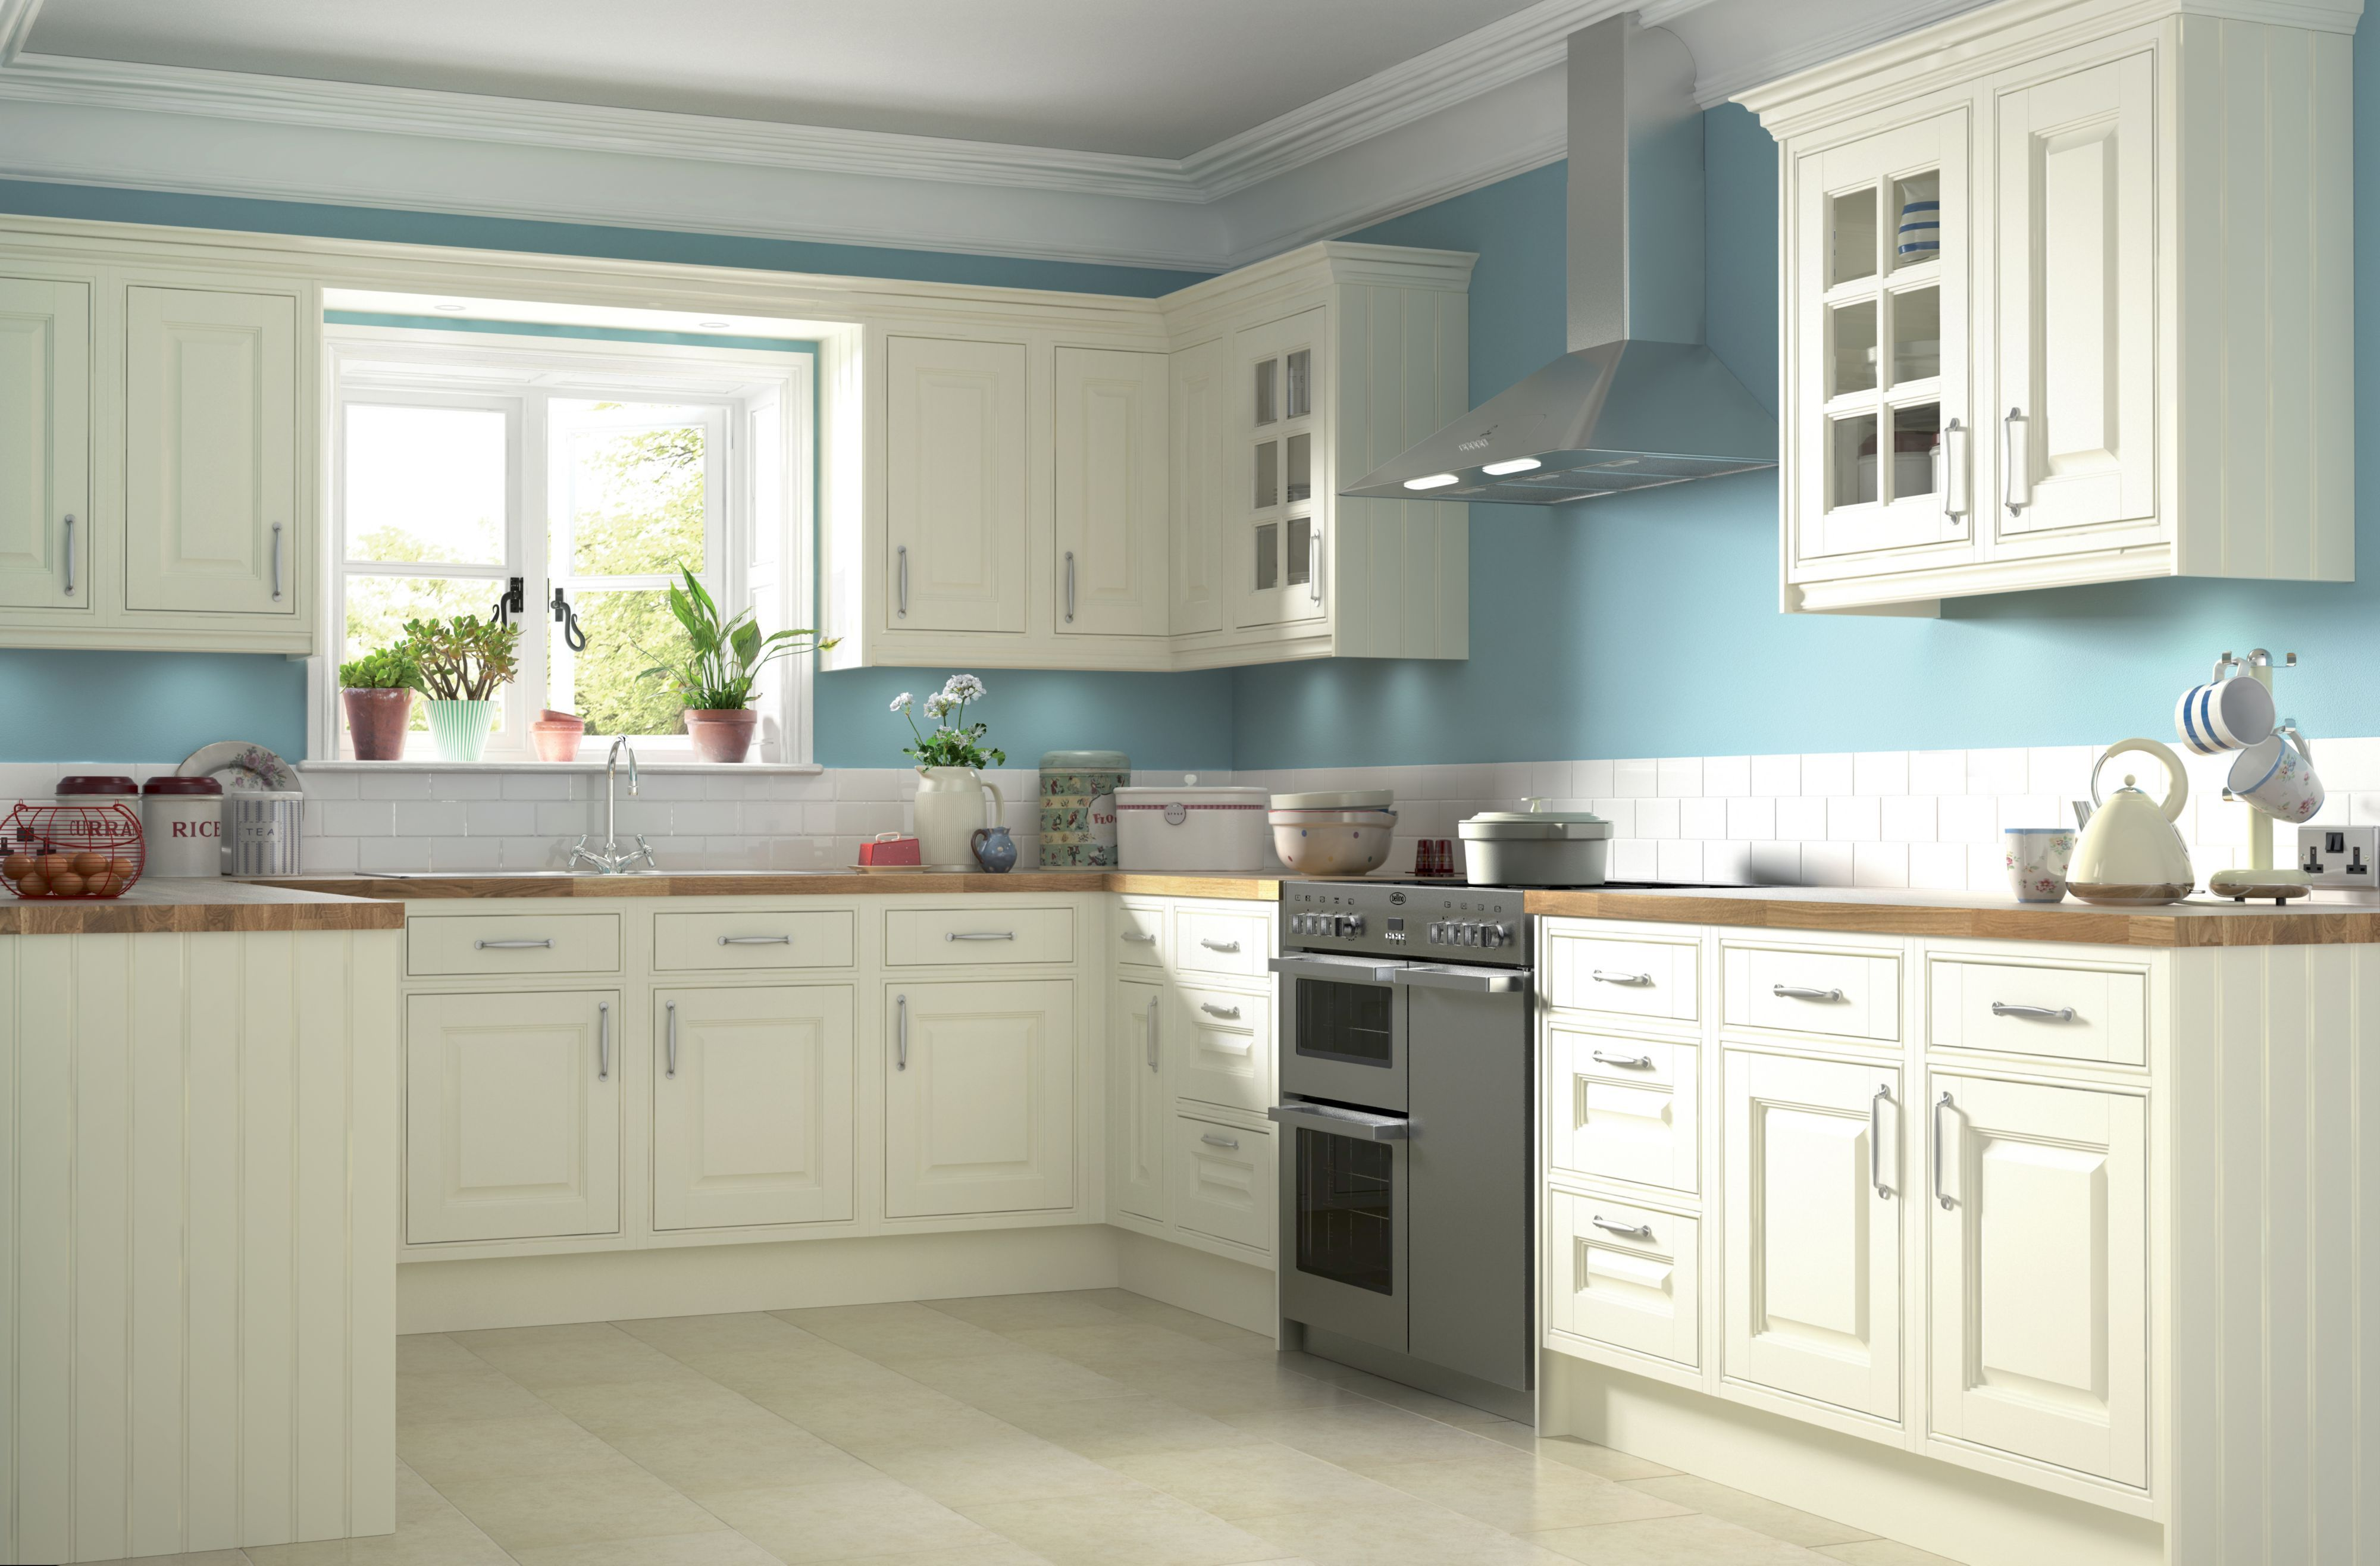 Enchanting Kitchen Color With White Tile Floor